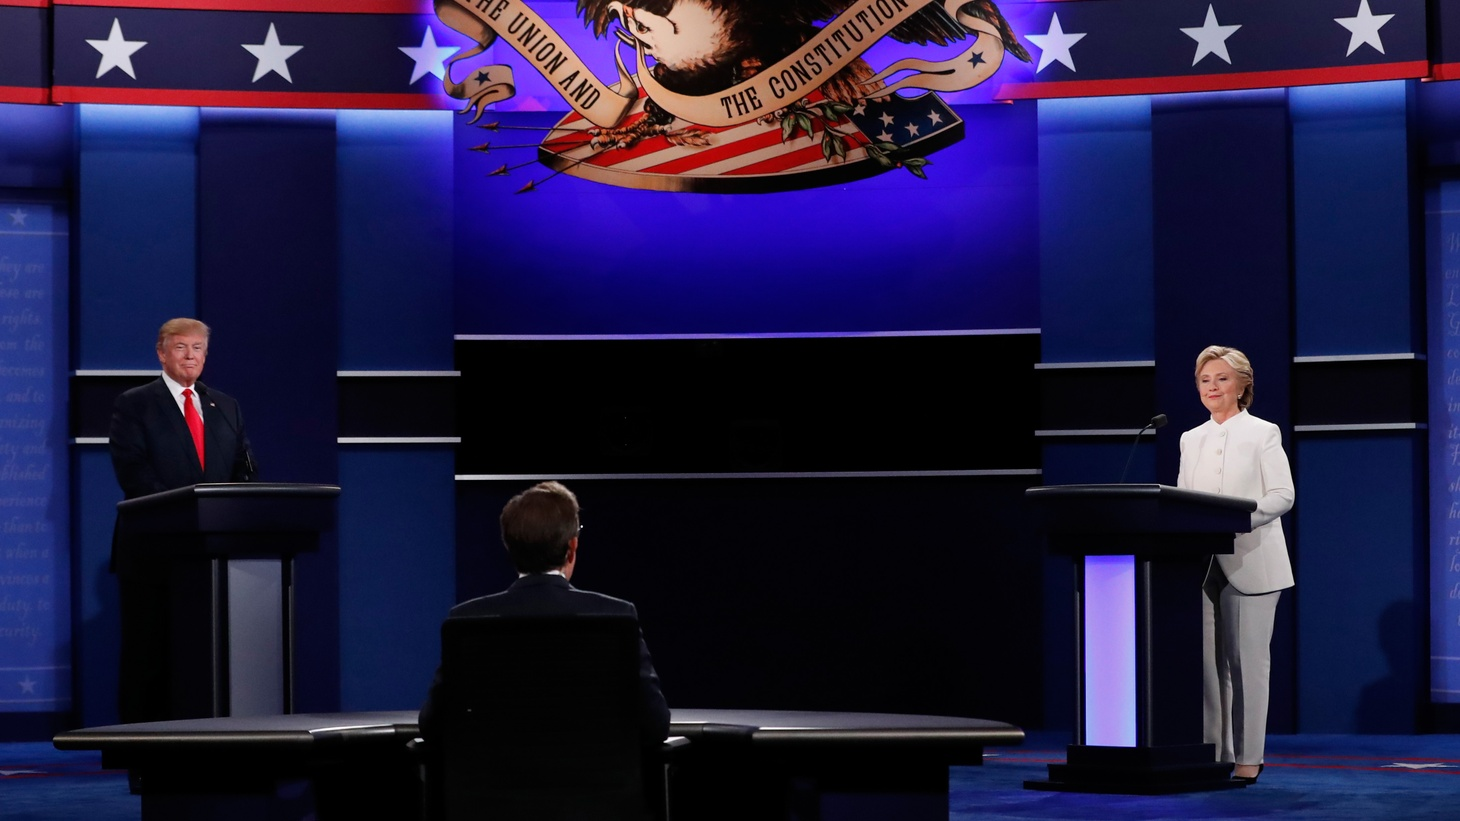 In last night's presidential debate in Las Vegas, Donald Trump refused to declare whether he'd accept the results of November's nationwide voting. Today, he told a rally he will accept the results-- if he wins…leaving open a possible challenge to the peaceful transition of power. The debate itself was almost traditional--until Hillary Clinton got under Trump's skin, giving way to another exchange of personal attacks and insults. We'll hear about the contentious issues, the likely impressions on various constituencies, the possible impact on the election—and the aftermath.